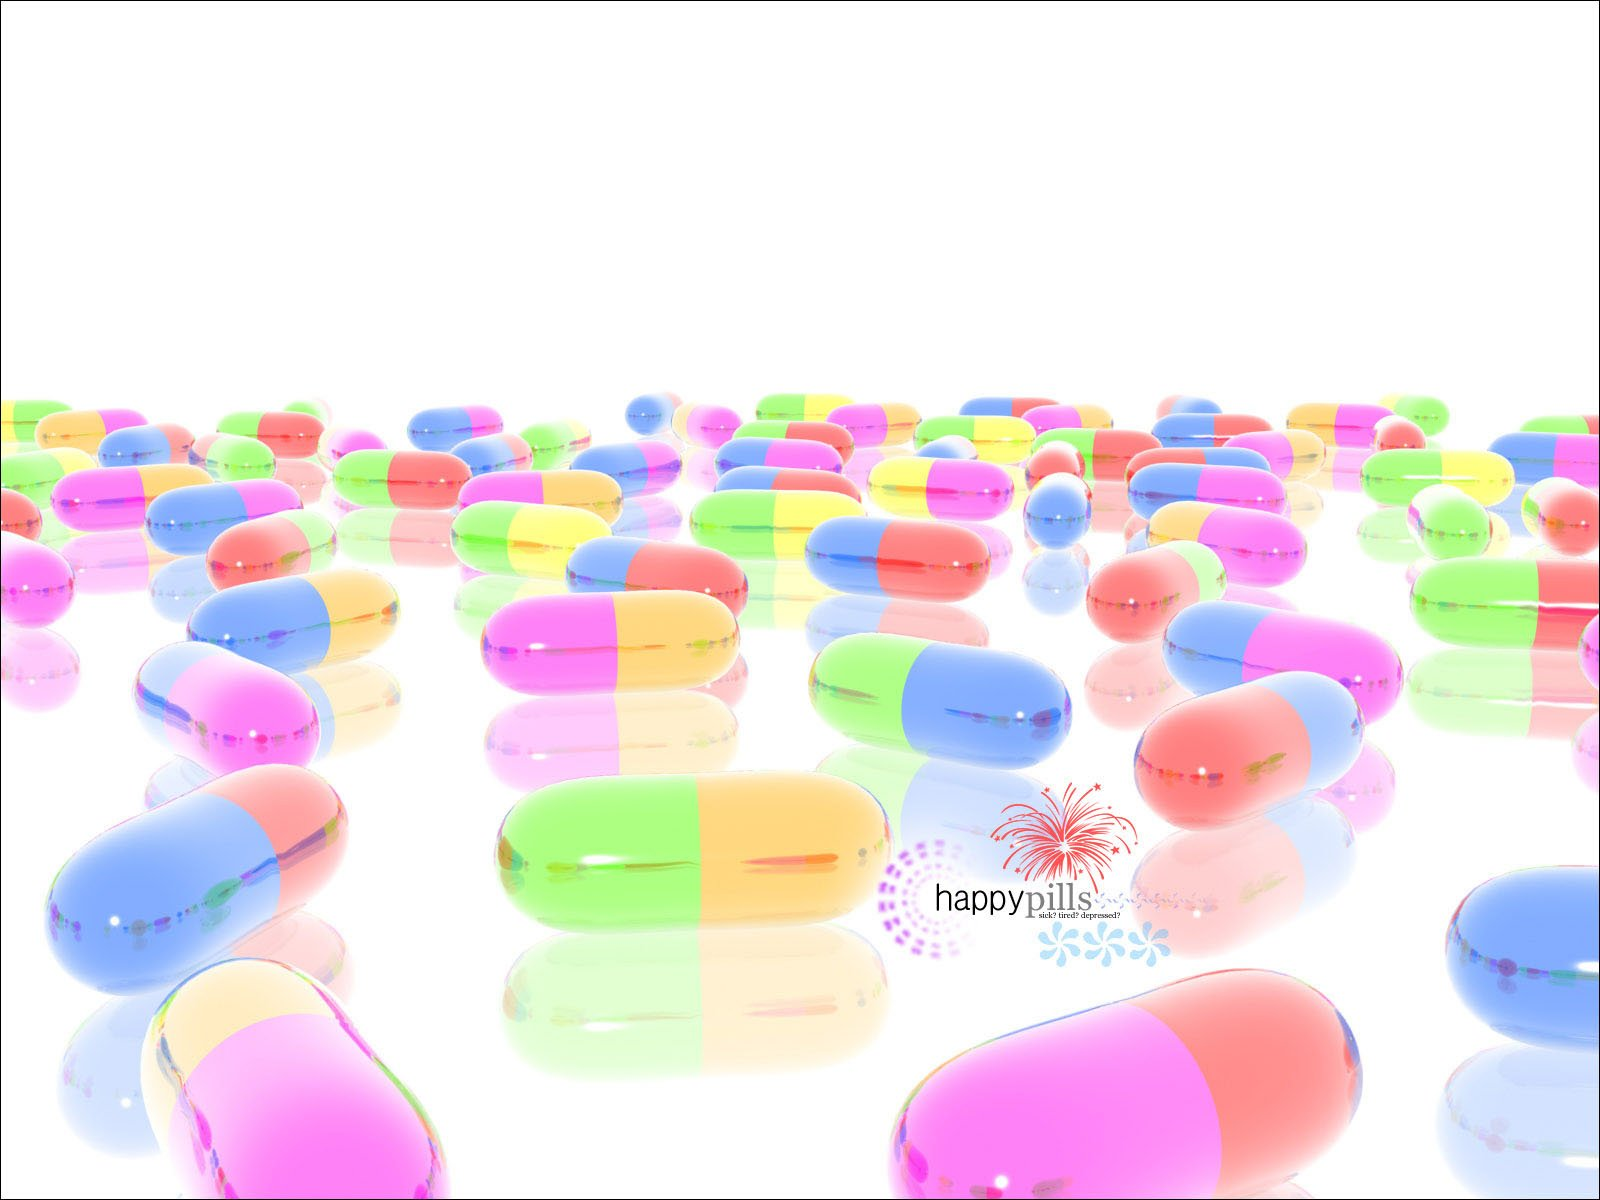 Drugs medicine pills wallpaper 1600x1200 259172 WallpaperUP 1600x1200